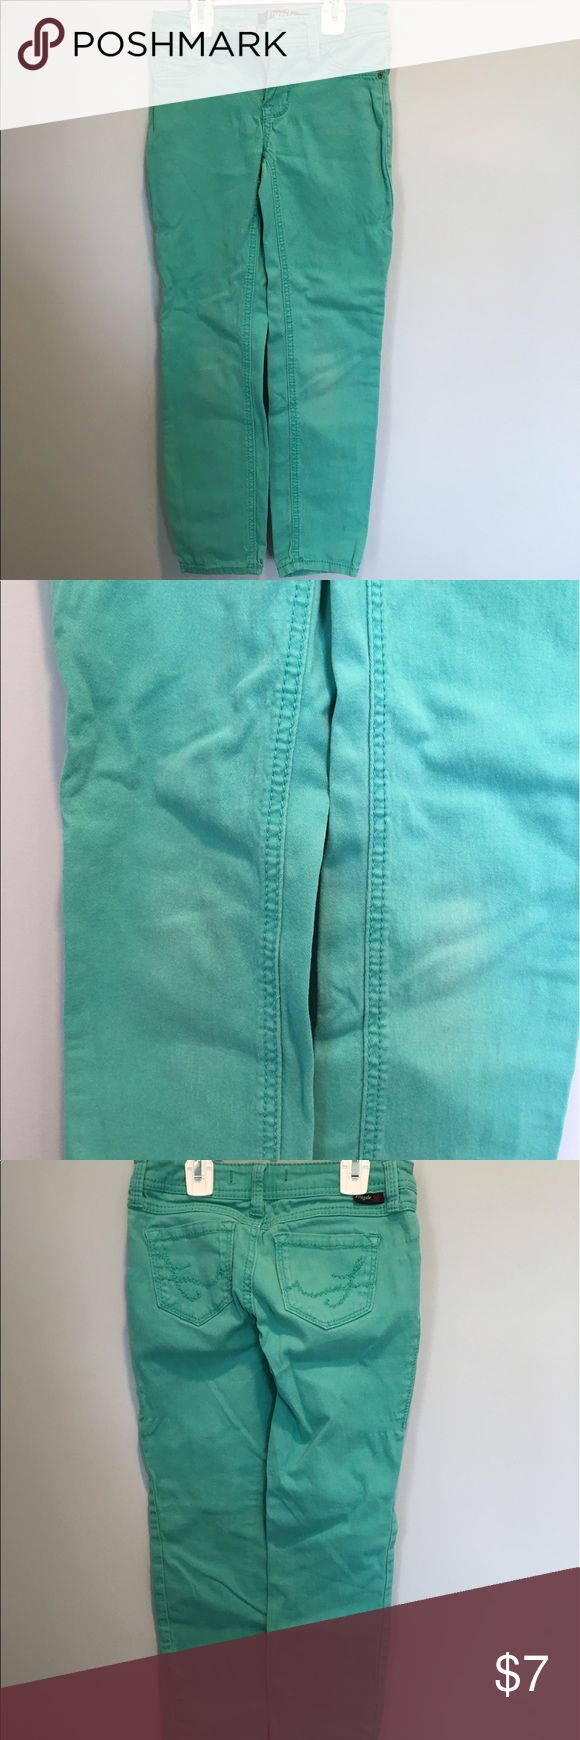 Teal skinny jeans These teal girls skinny jeans are in great condition. The knees are slightly faded but no other holes or stains. Fragile Bottoms Jeans